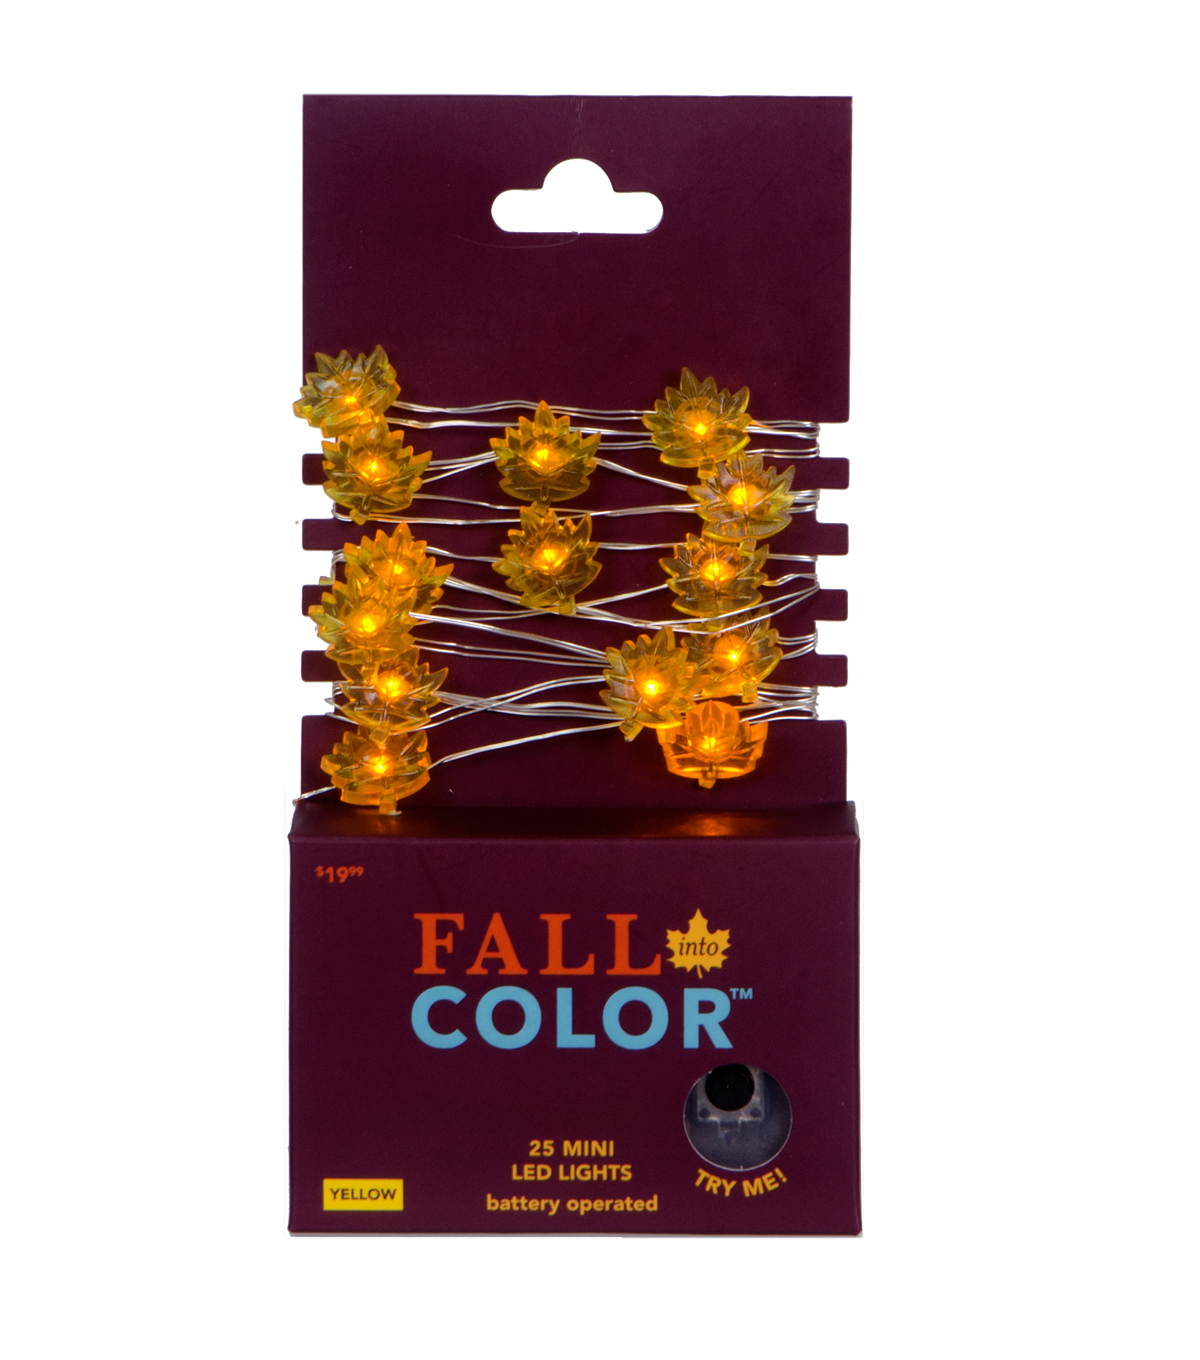 Fall Into Color 25 Count Leaf LED Light-Yellow with Silver Wire